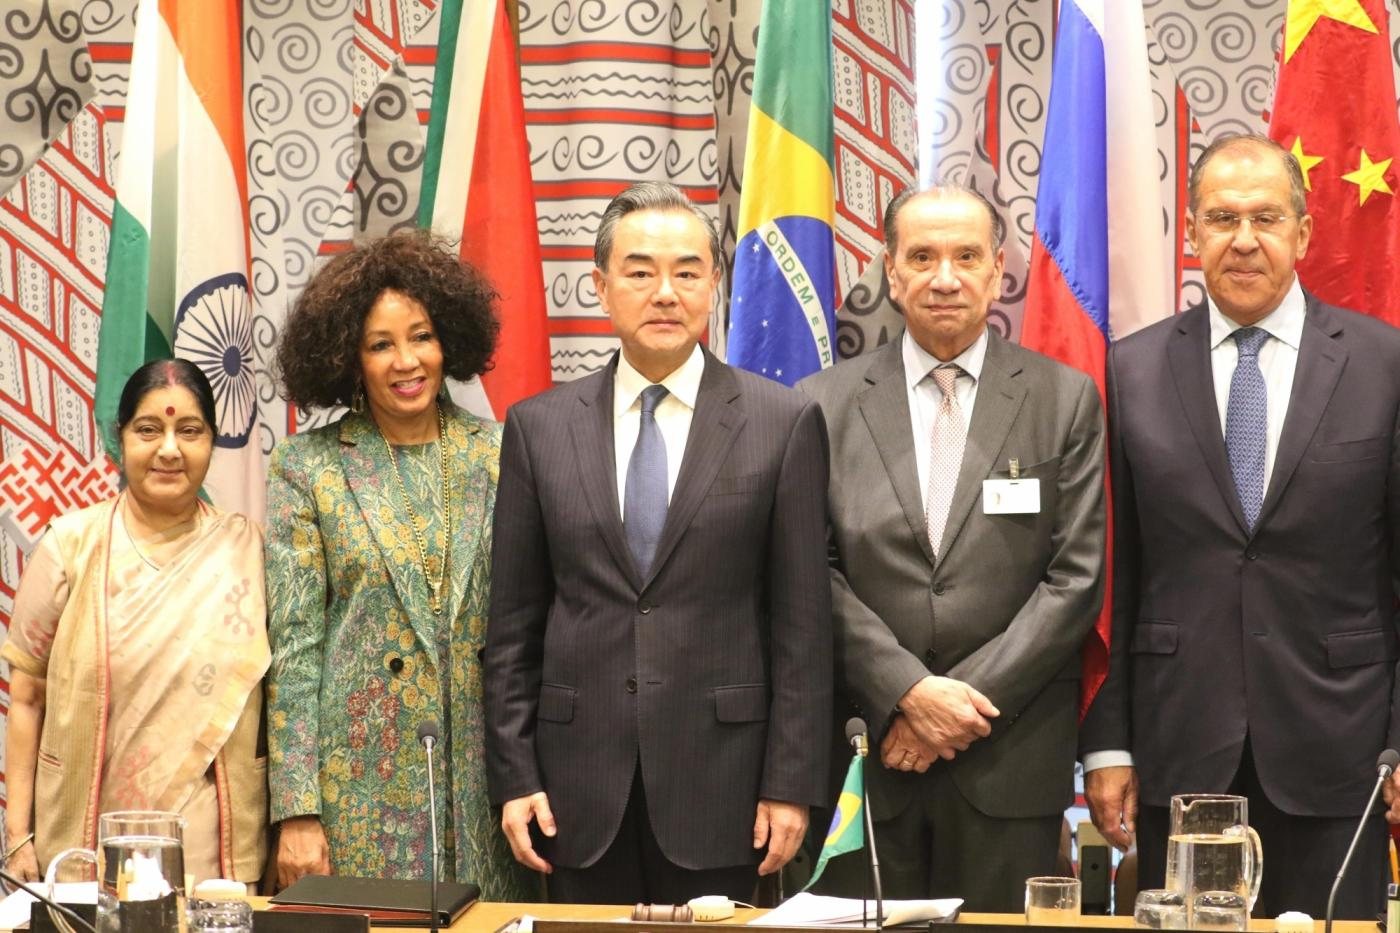 United Nations: (L-R) External Affairs Minister Sushma Swaraj, South Africa's Foreign Minister Lindiwe Sisulu, Chinese Foreign Minister Wang Yi, Brazil's Foreign Minister Aloysio Nunes Ferreira and Russian Foreign Minister Sergey Lavrov at BRICS Foreign Ministers' meeting at United Nations on Sept 27, 2018. (Photo: Mohammed Jaffer/IANS) by .